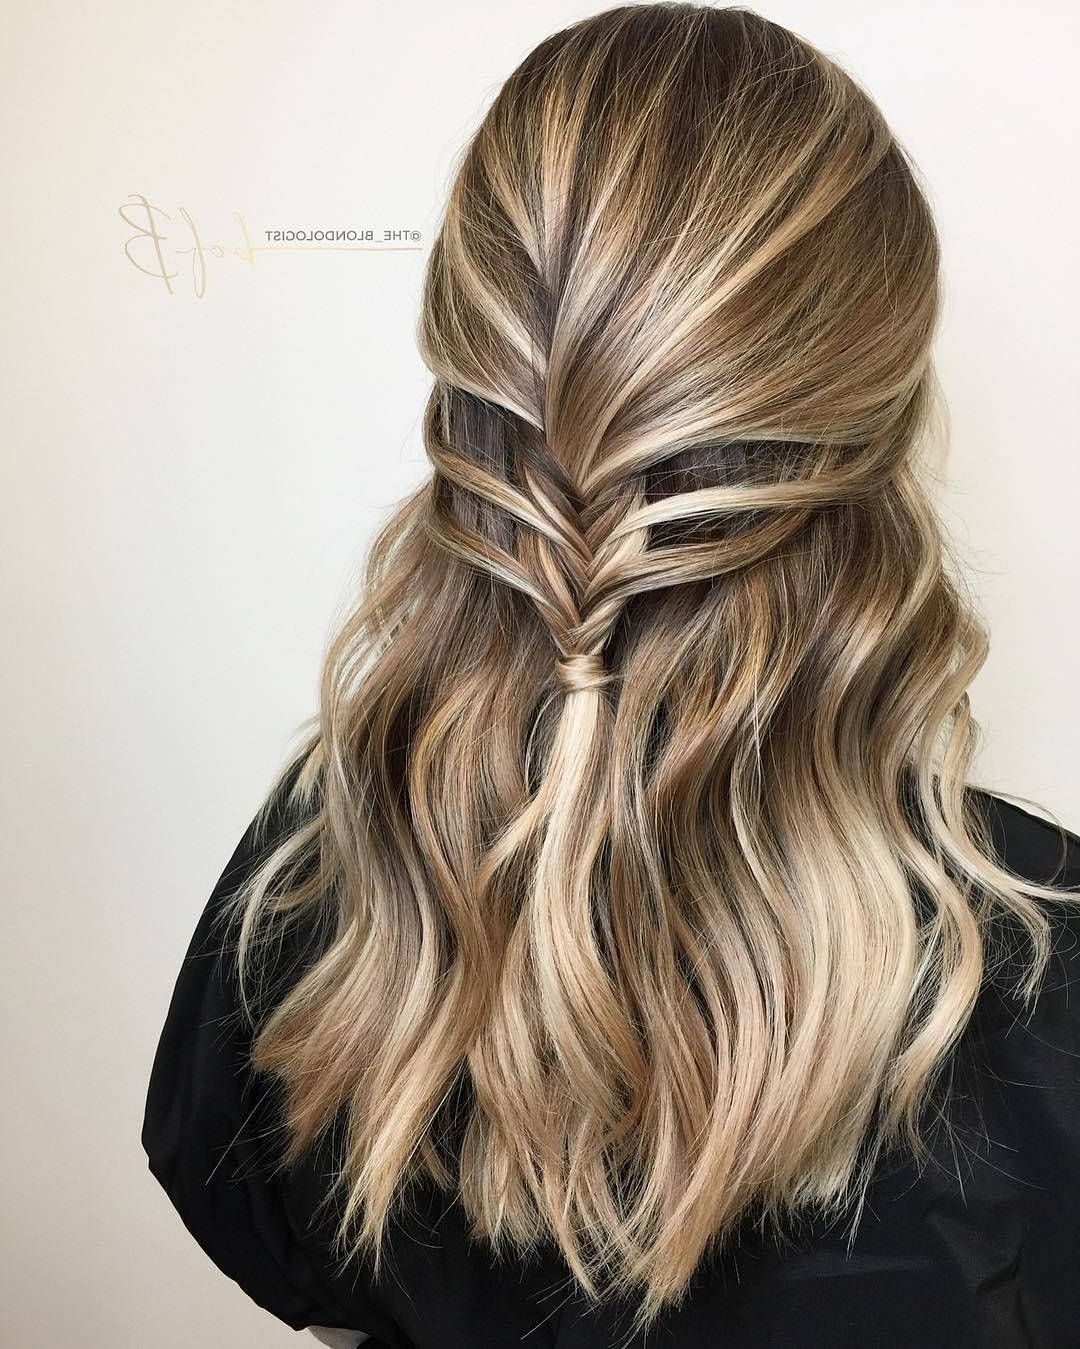 10 Blonde, Brown & Caramel Balayage Hair Color Ideas You Shouldn't With Regard To Recent Cool Dirty Blonde Balayage Hairstyles (View 6 of 20)